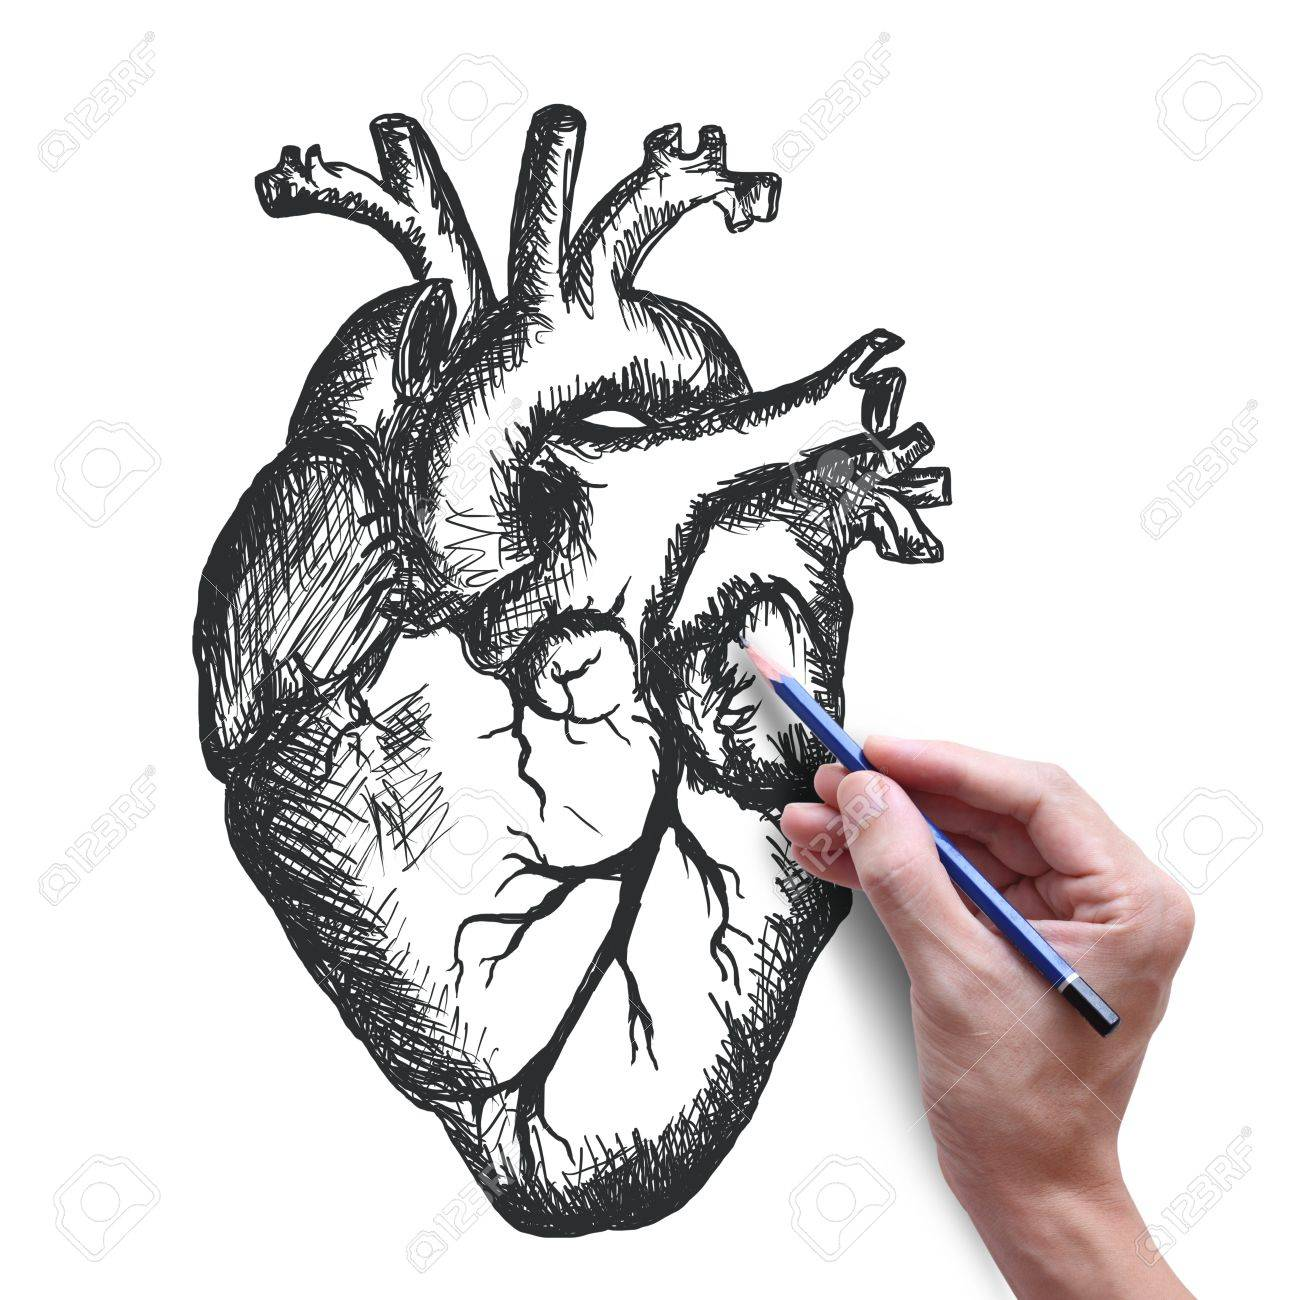 heart drawing on white background